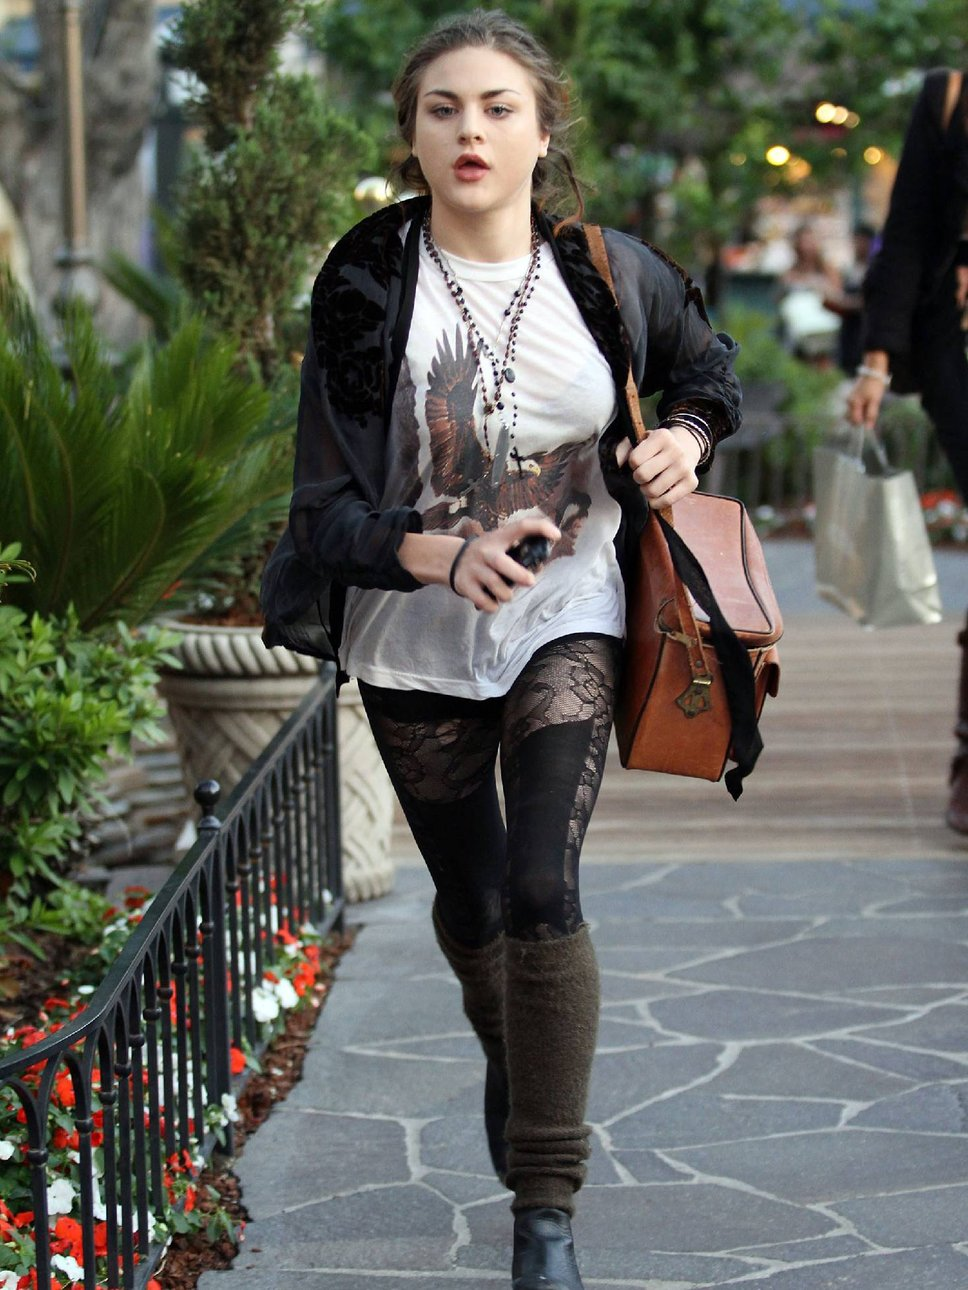 Lemagass Celebrity Style Februara 2011 Frances Bean Cobain